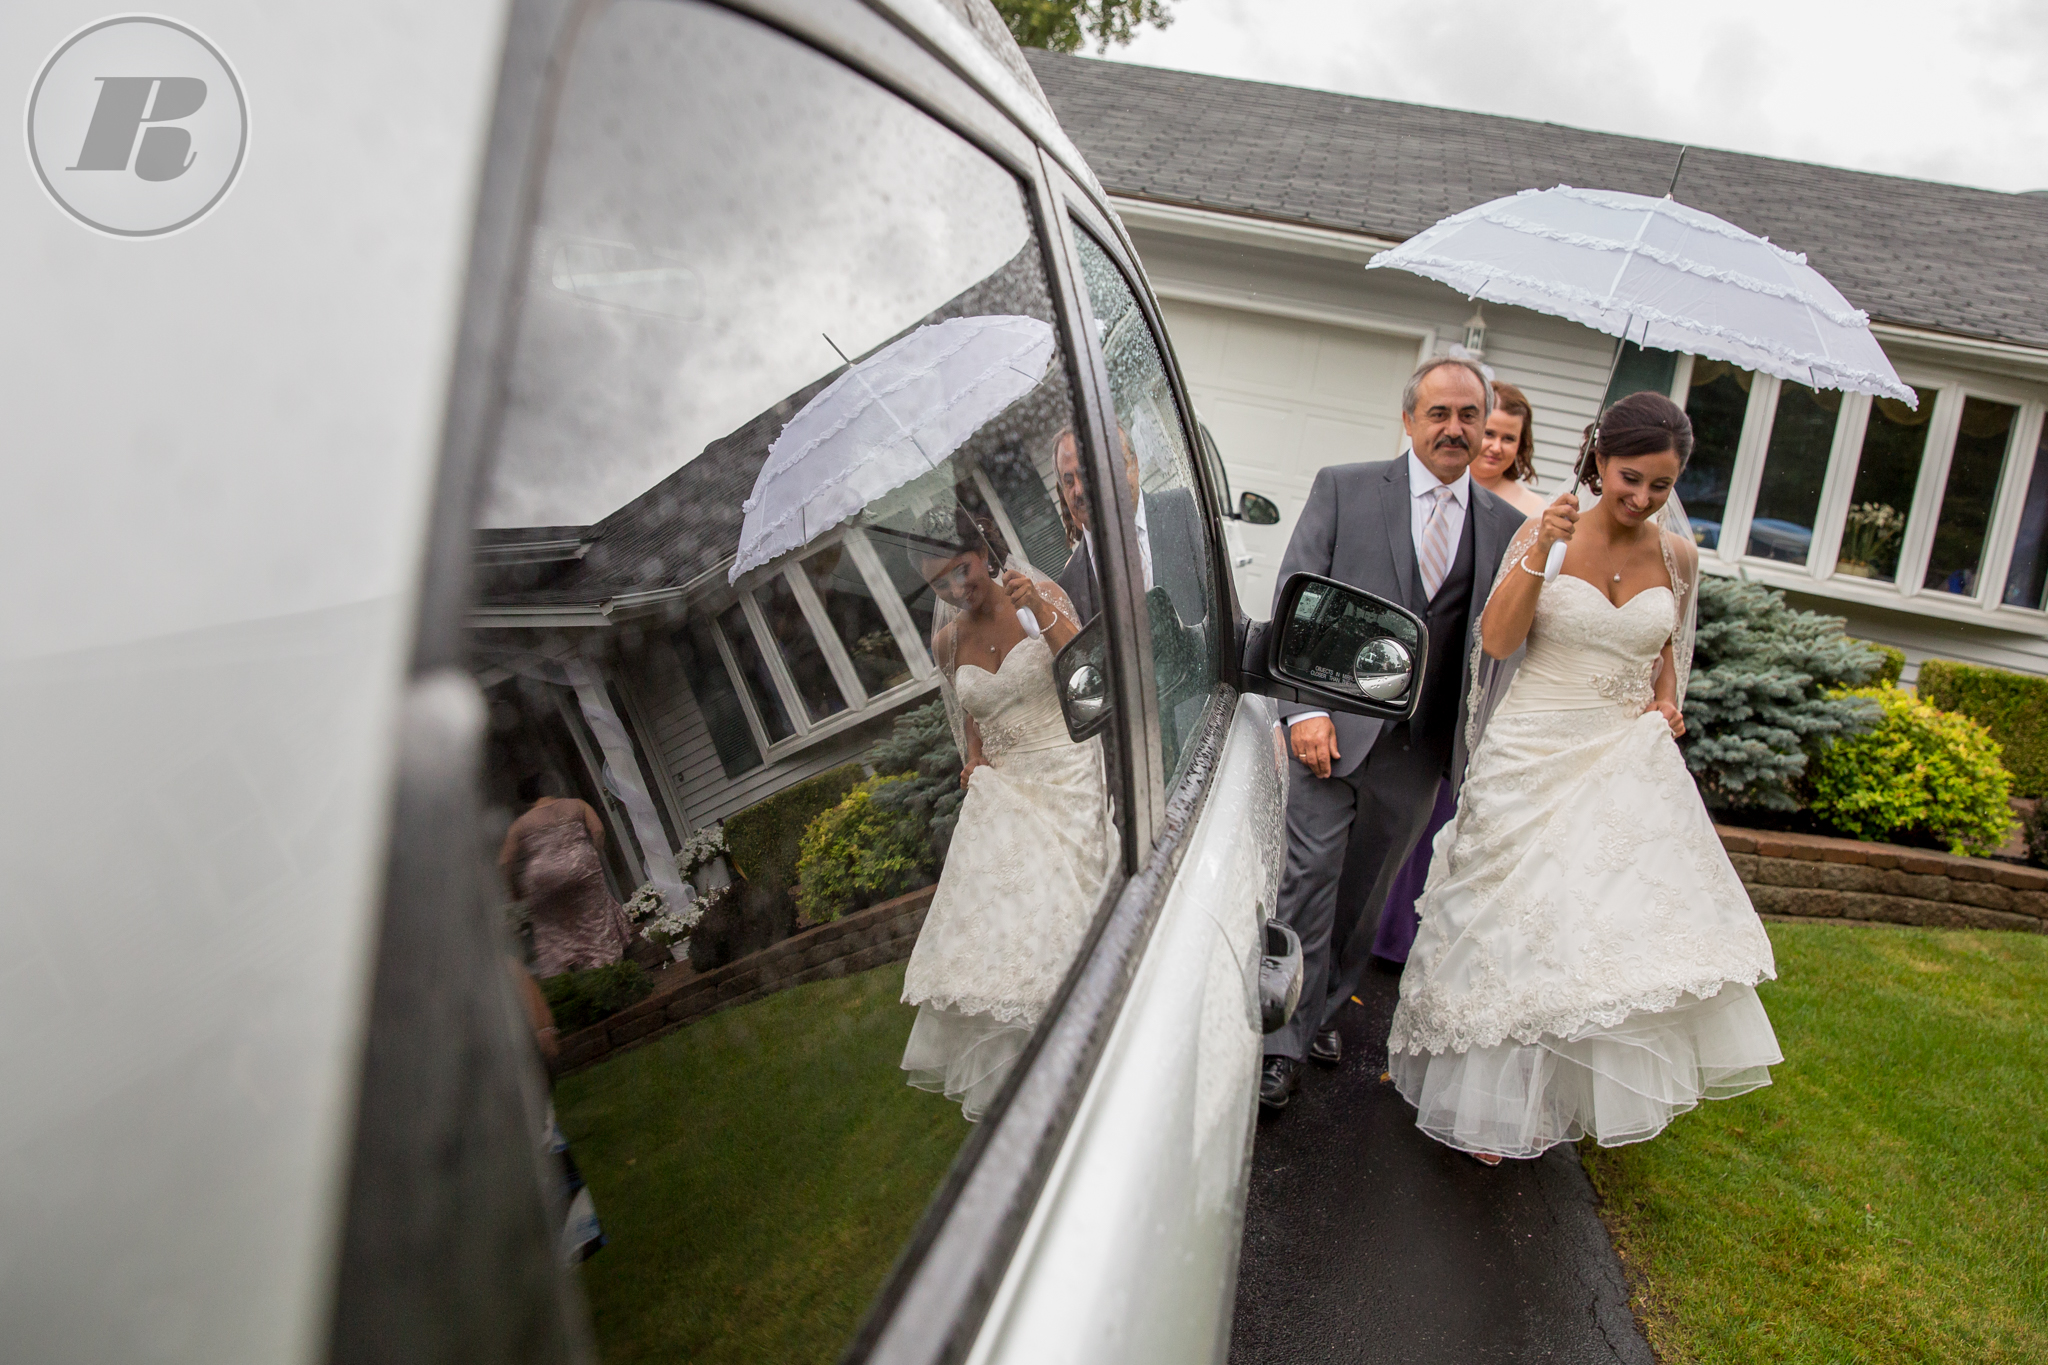 rich paprocki photography, rochester wedding photographers, buffalo wedding photographers